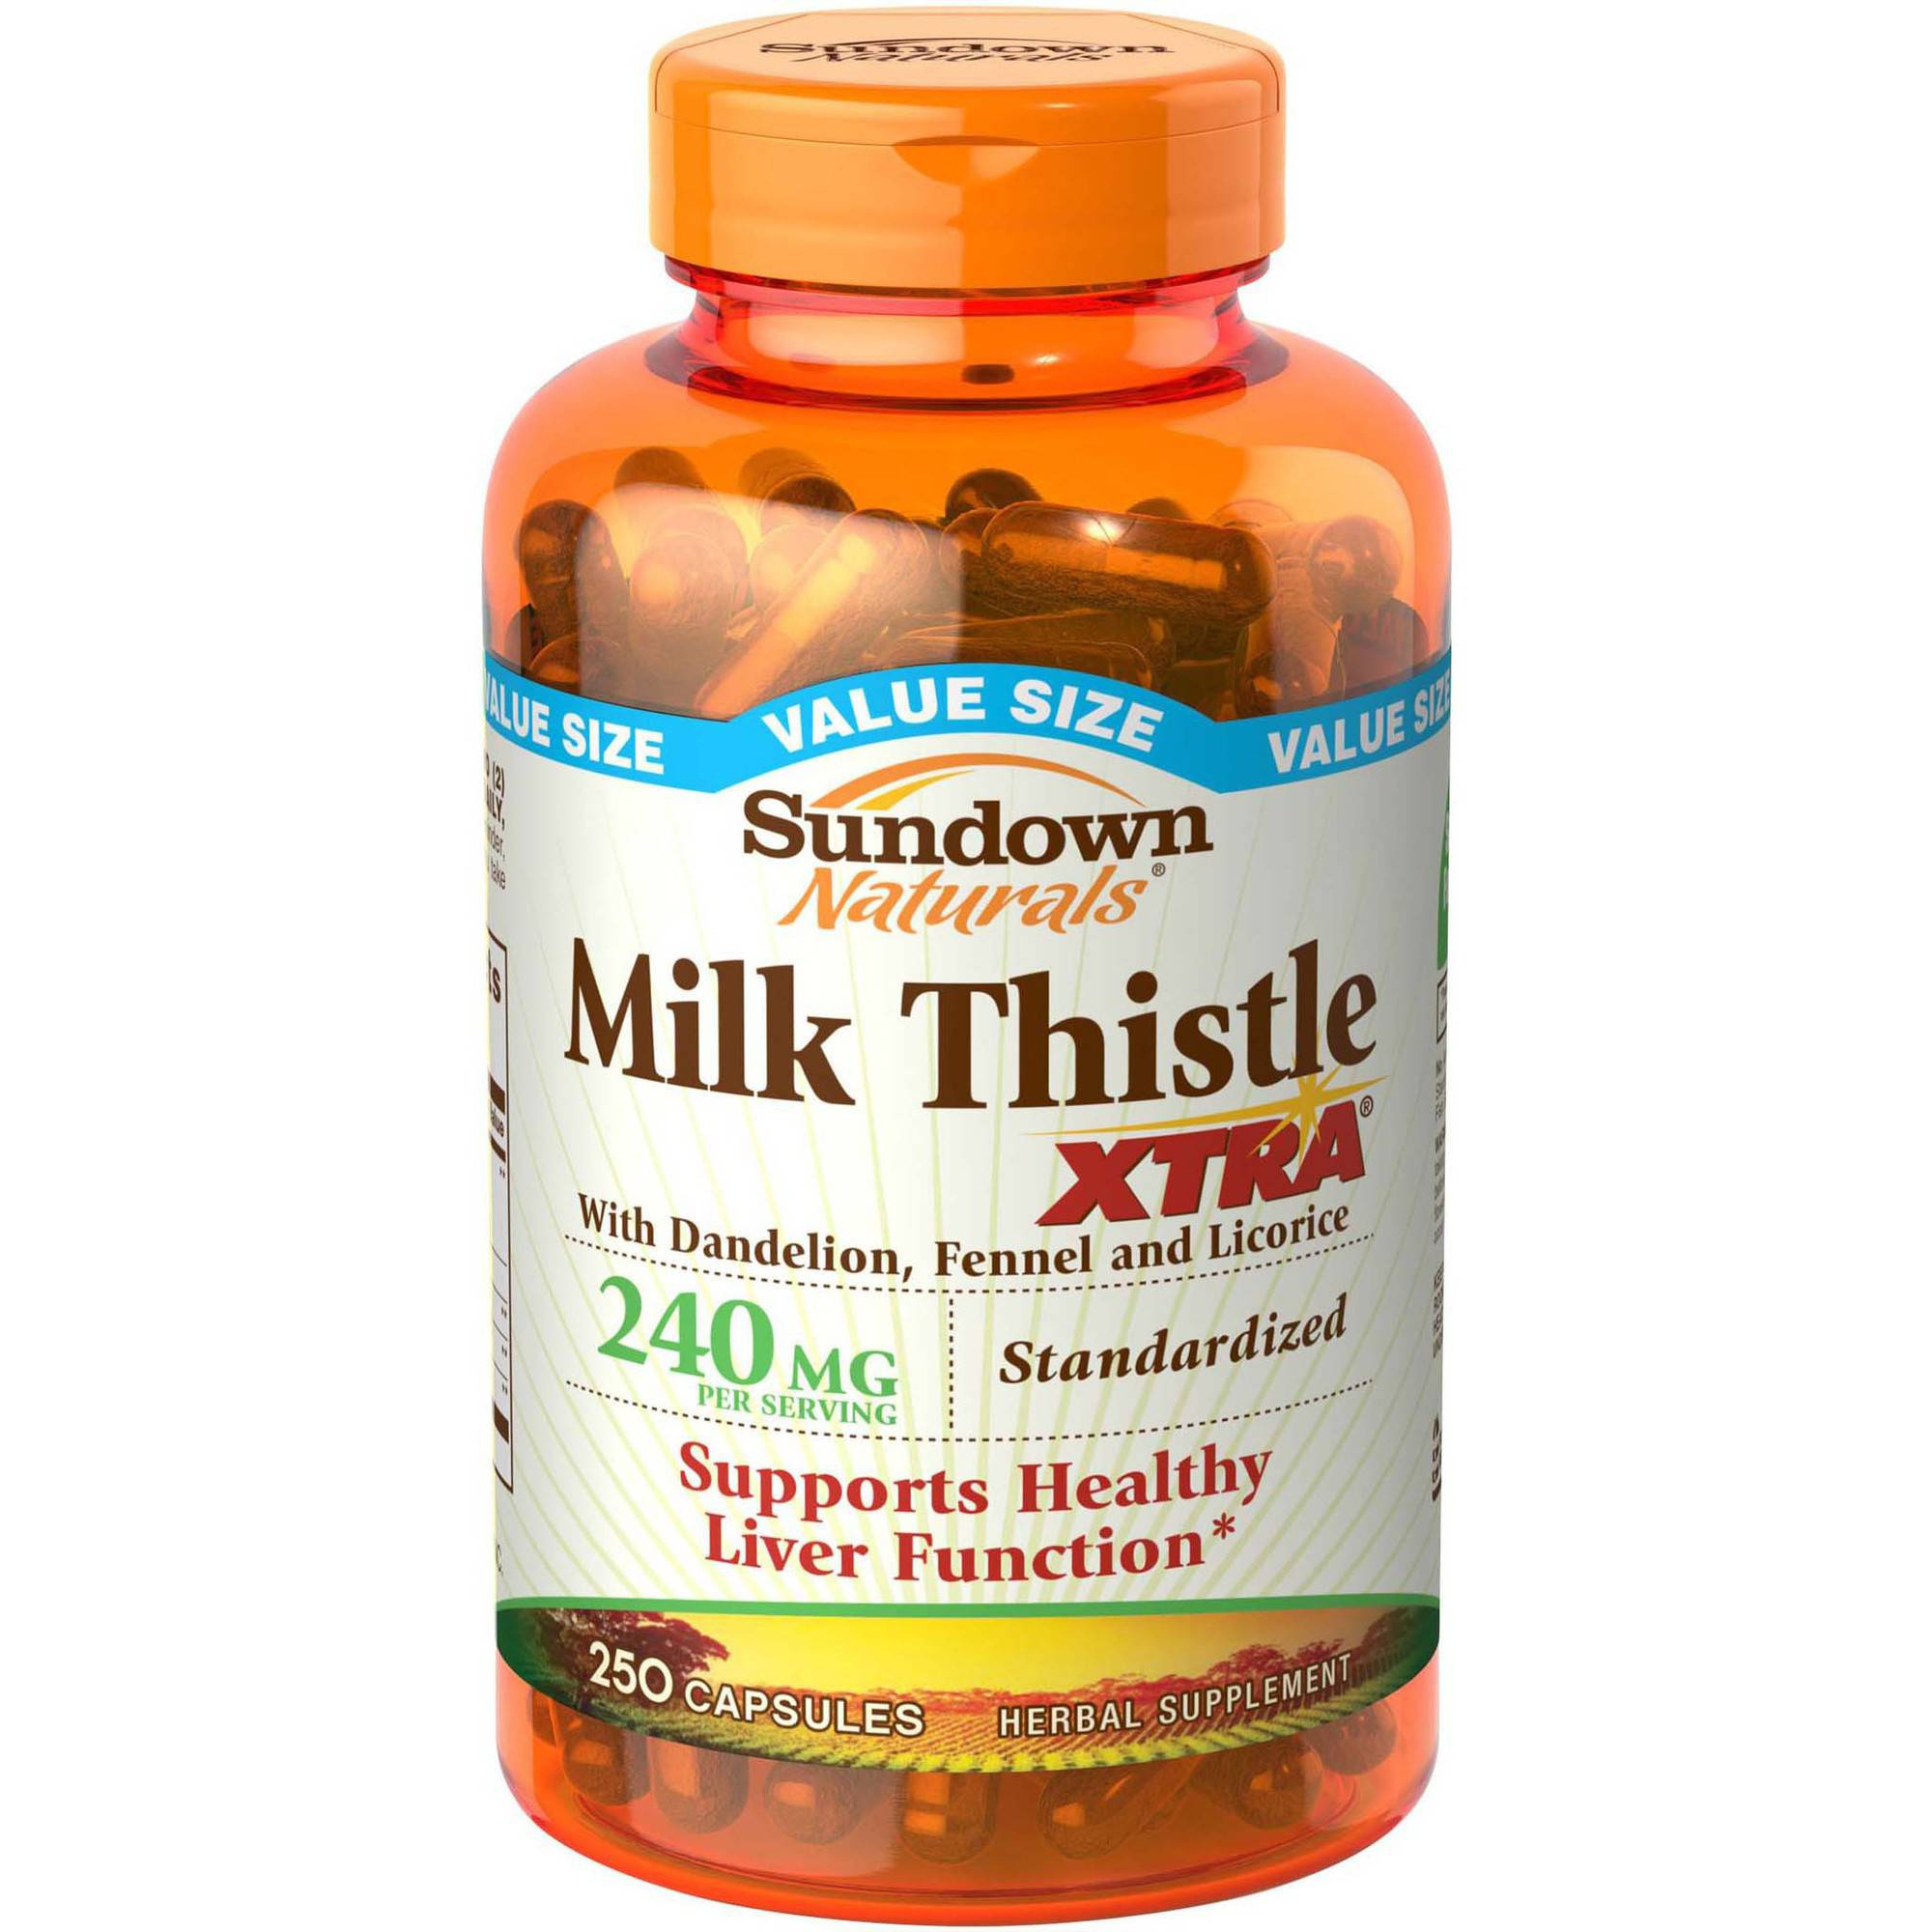 Sundown Naturals Milk Thistle XTRA Herbal Supplement Capsules, 240mg, 250 count